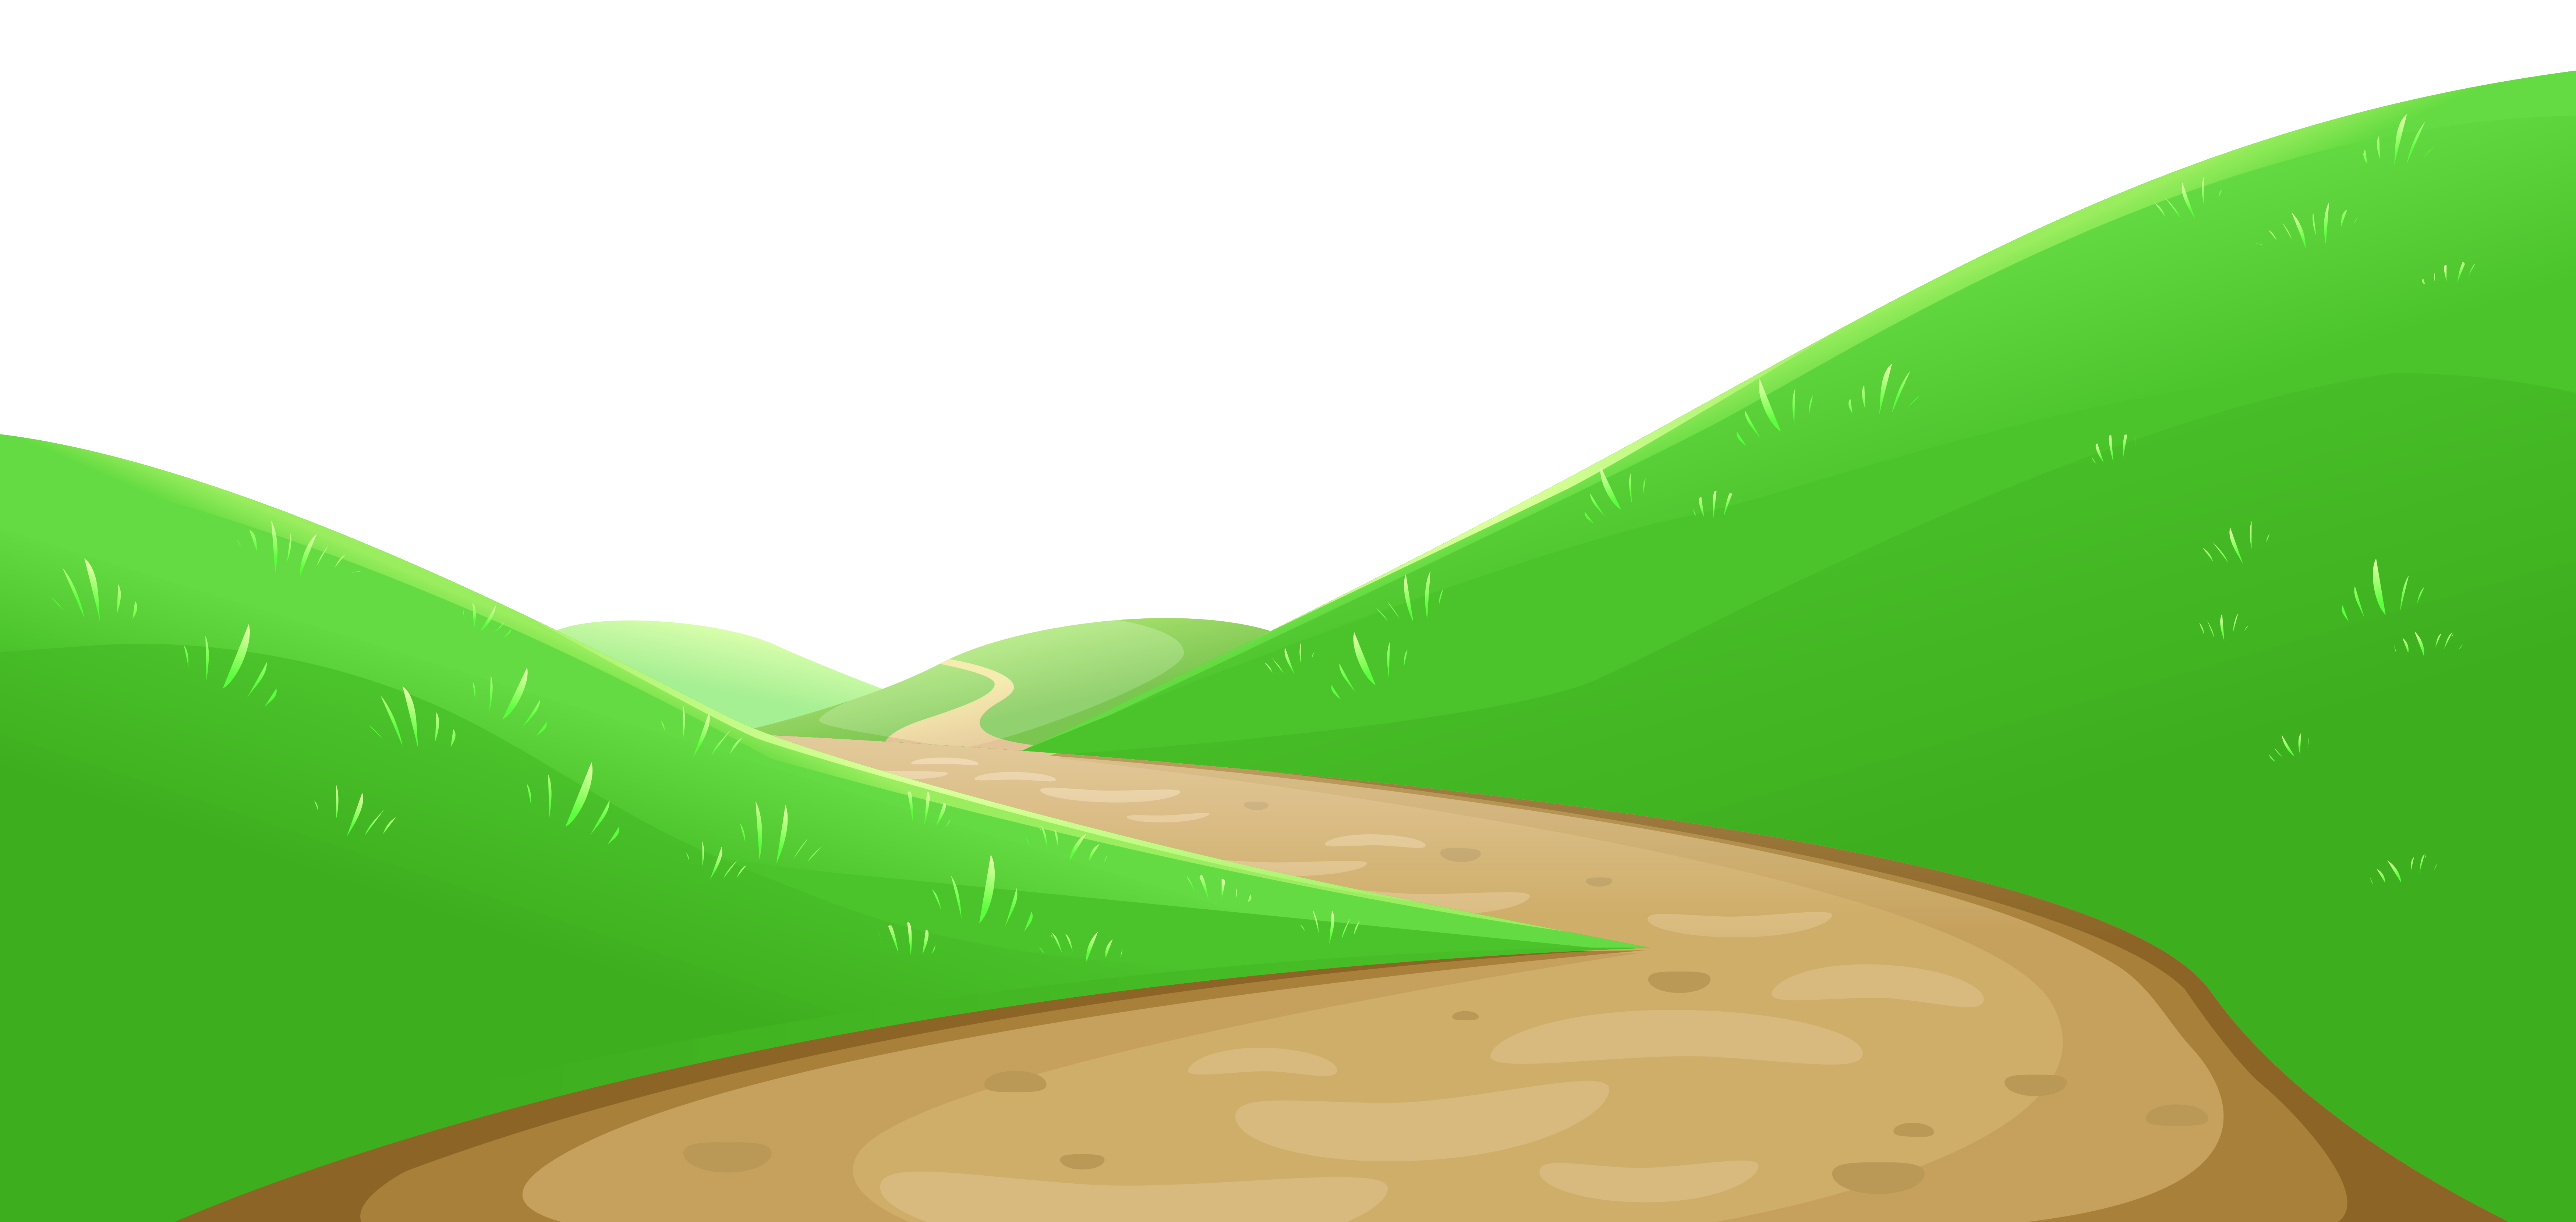 Valley clipart #3, Download drawings